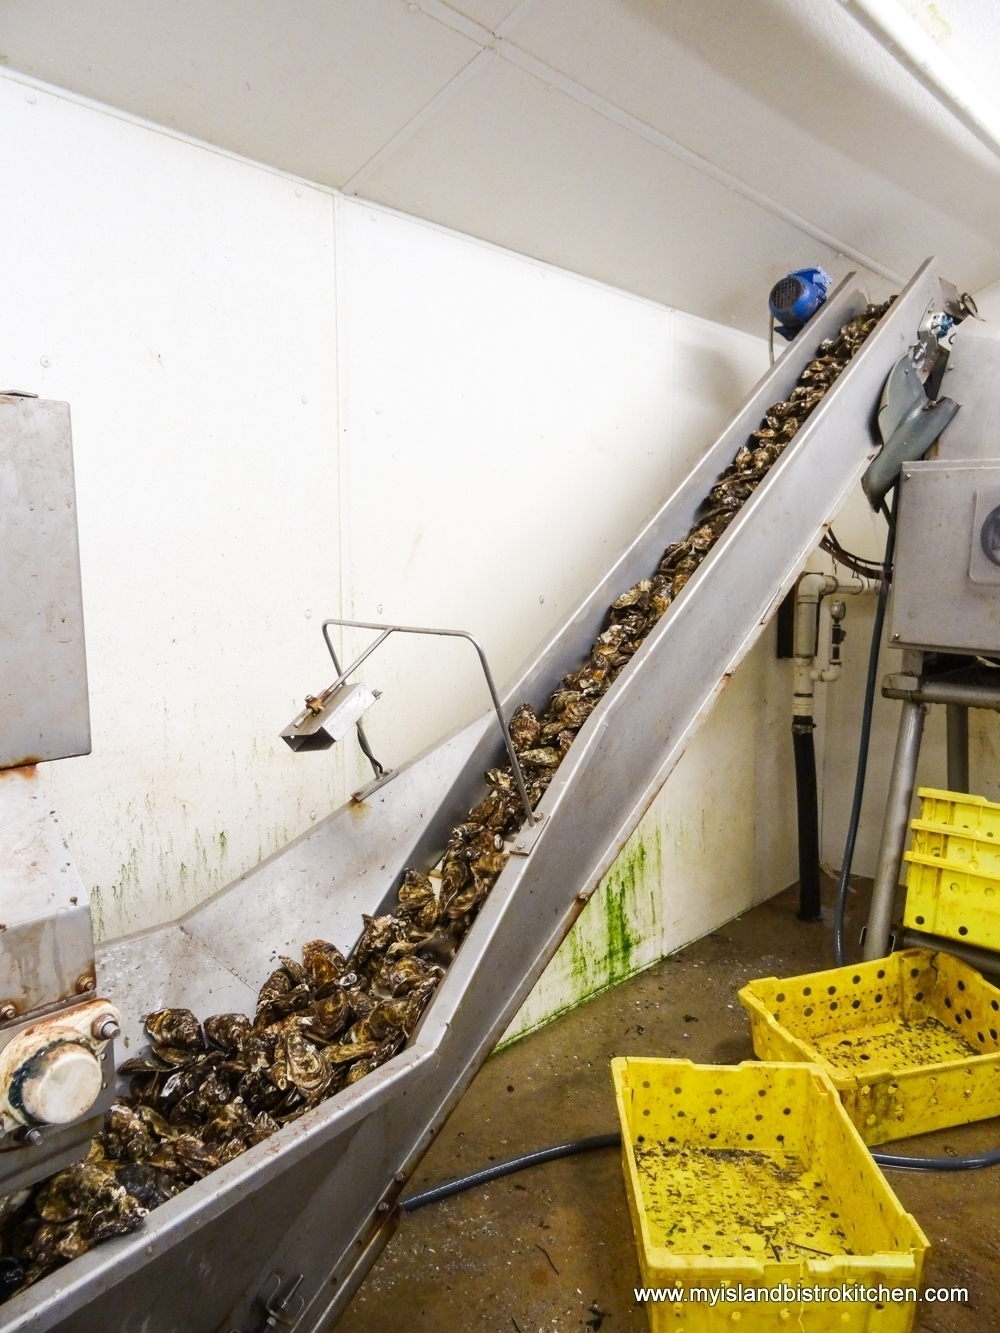 Oysters Arriving at the Processing Plant